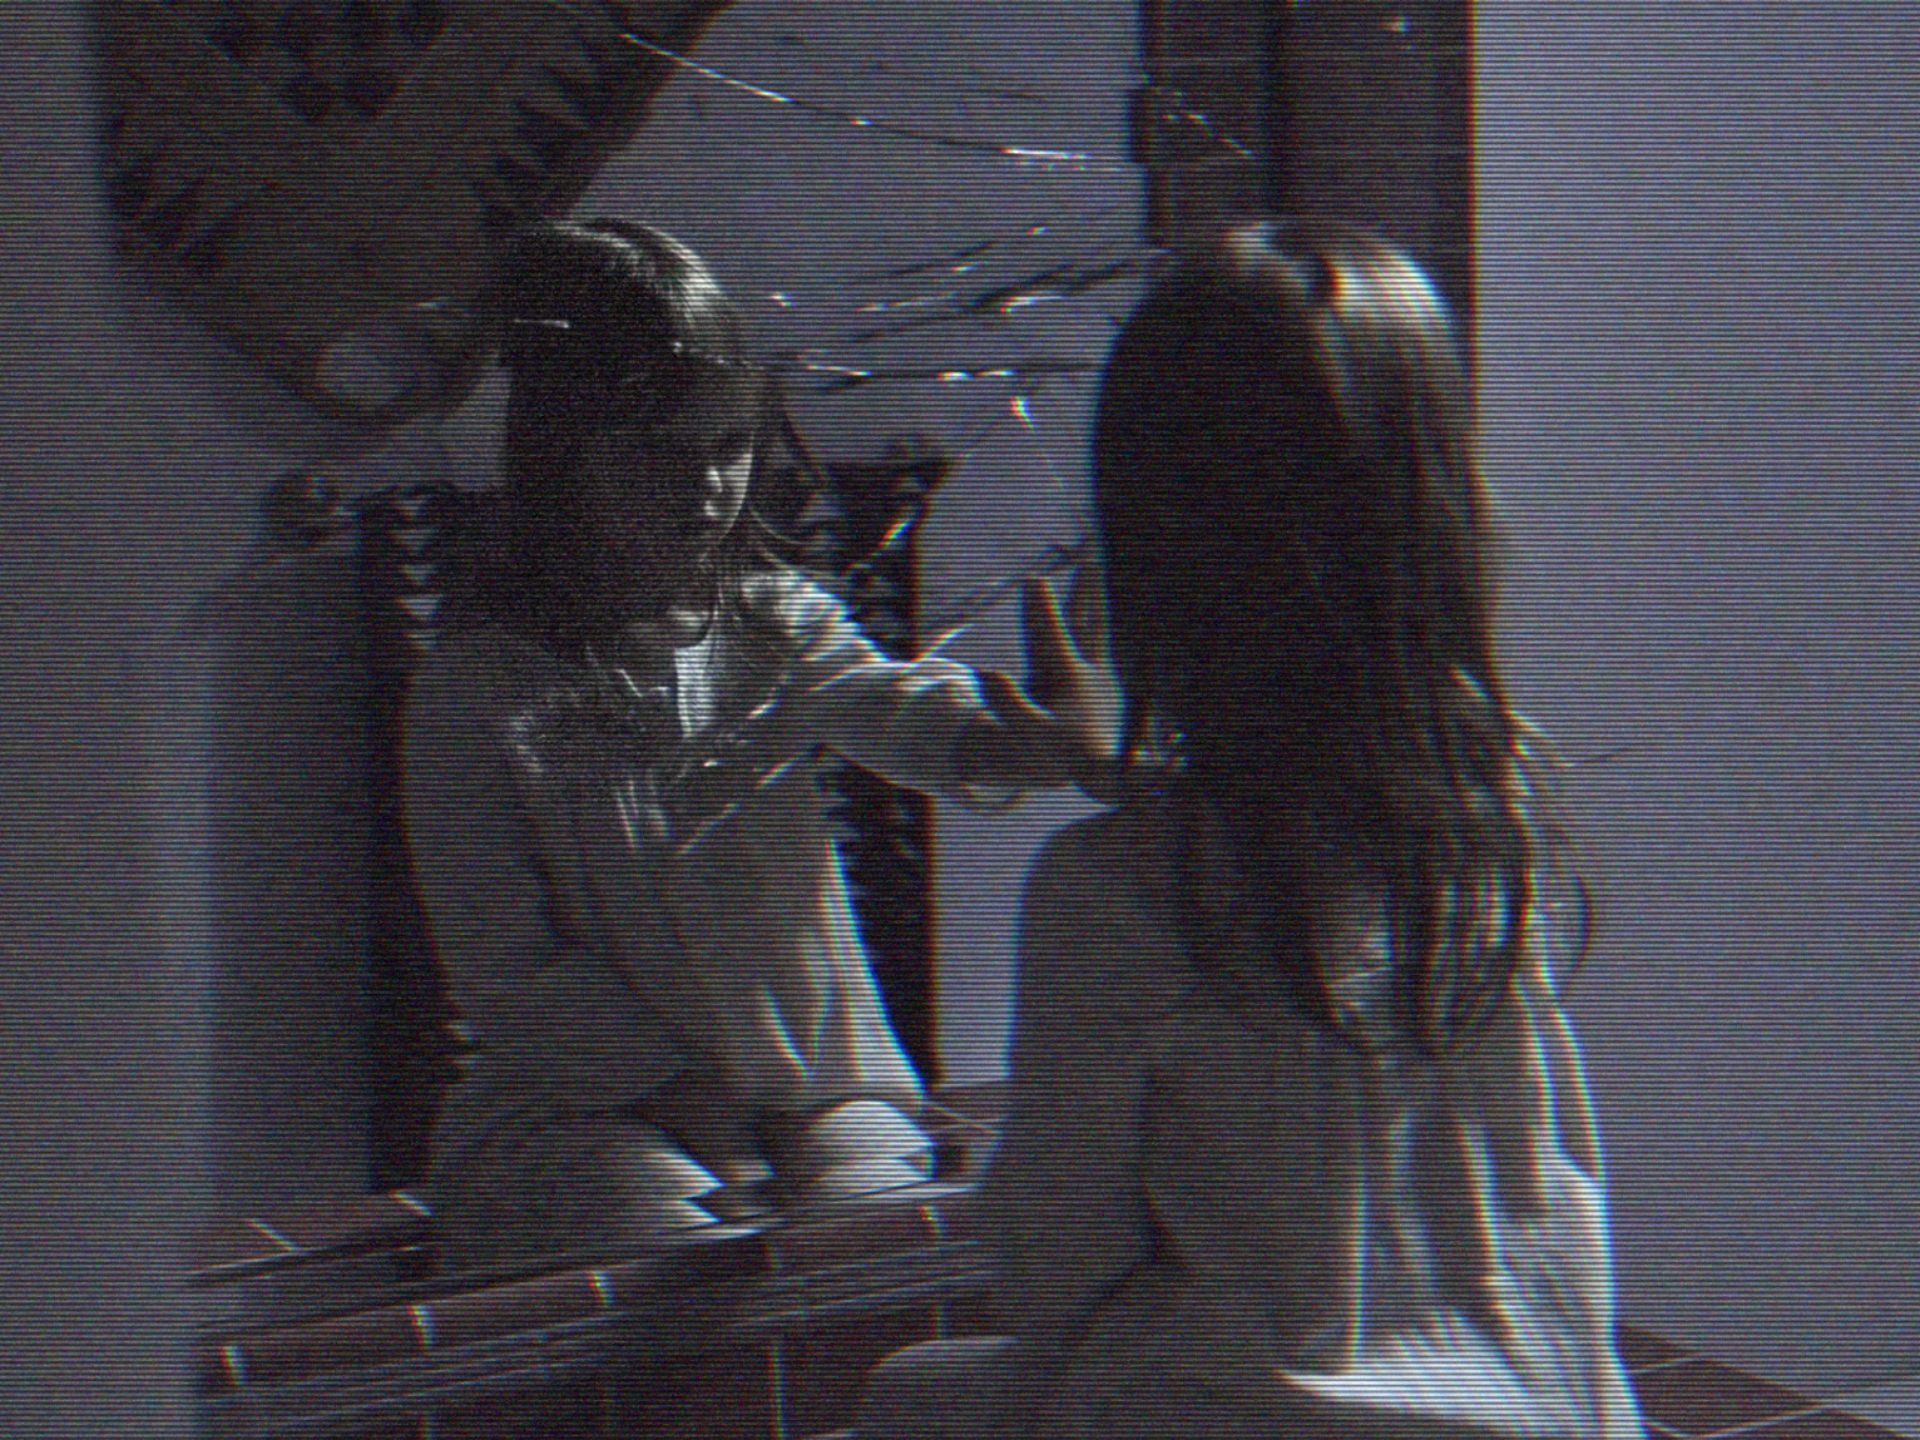 Foto de Imágenes de 'Paranormal Activity: The Ghost Dimension' (3/3)